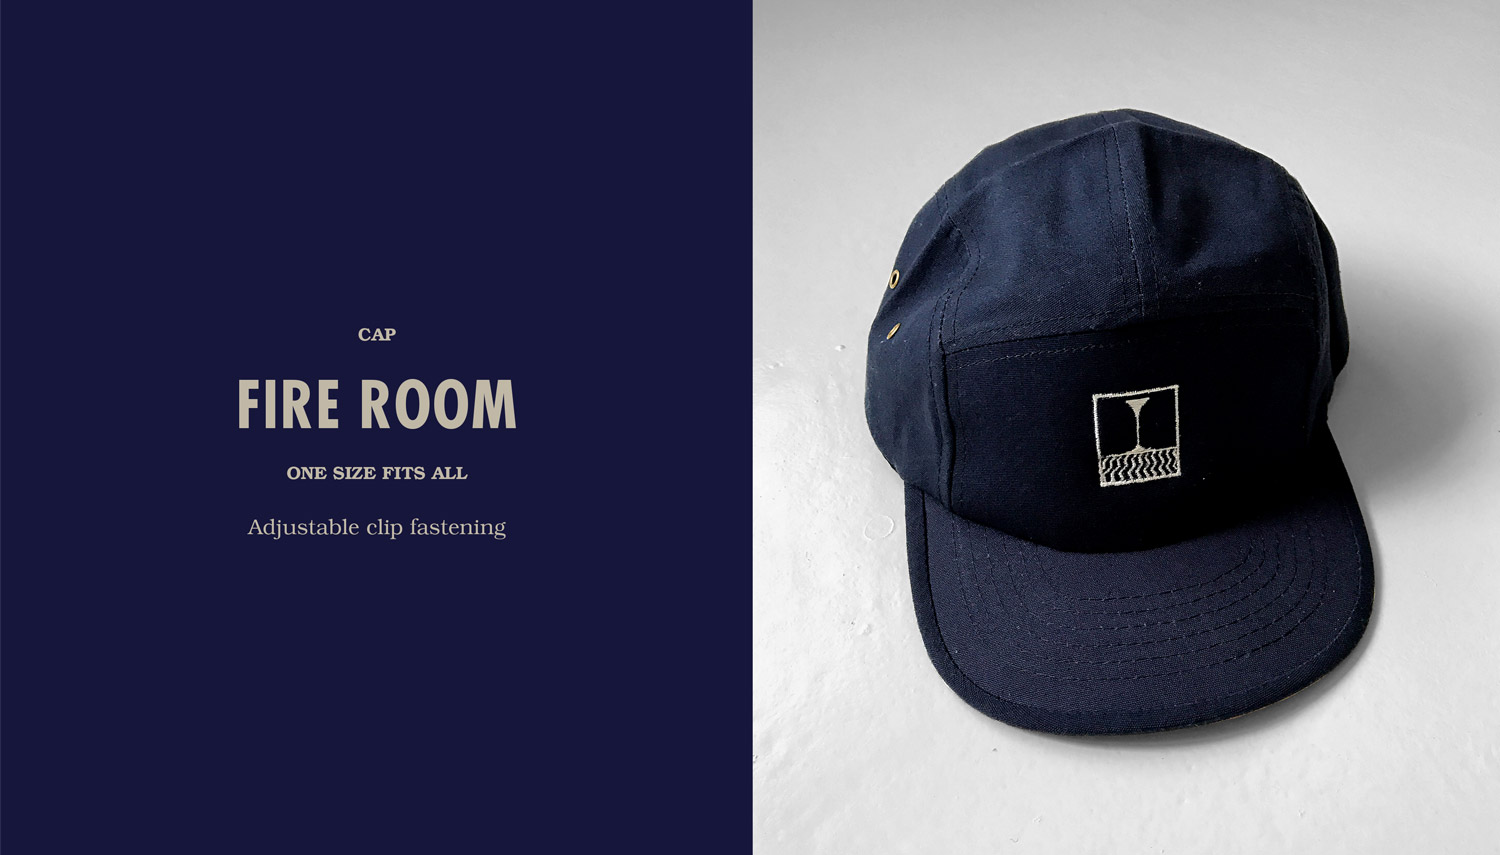 FIRE1984 catalog 20171 fire room cap navy